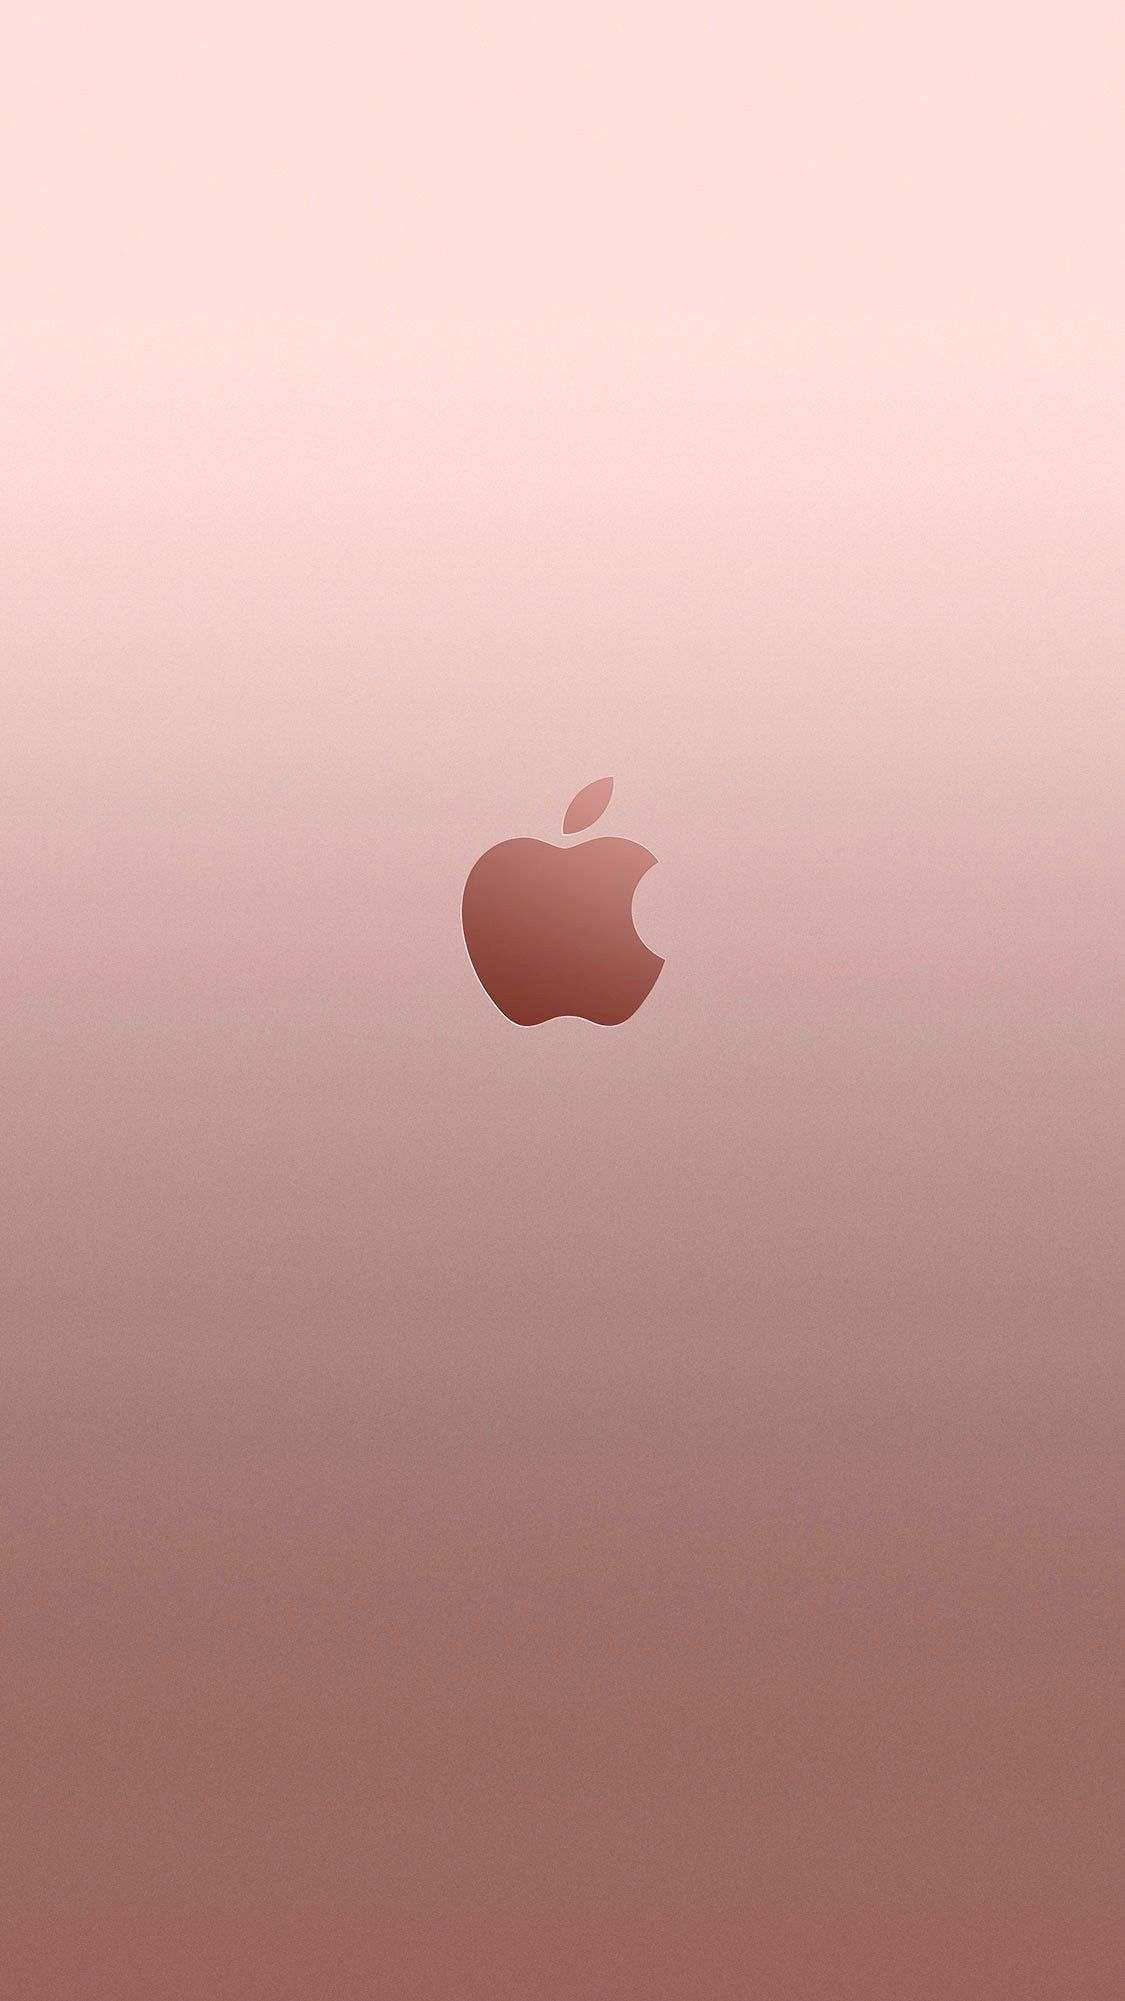 Cool Rose Gold Cute Wallpaper For Iphone 7 Plus Images Gold Wallpaper Iphone Iphone 7 Plus Wallpaper Rose Gold Wallpaper Iphone